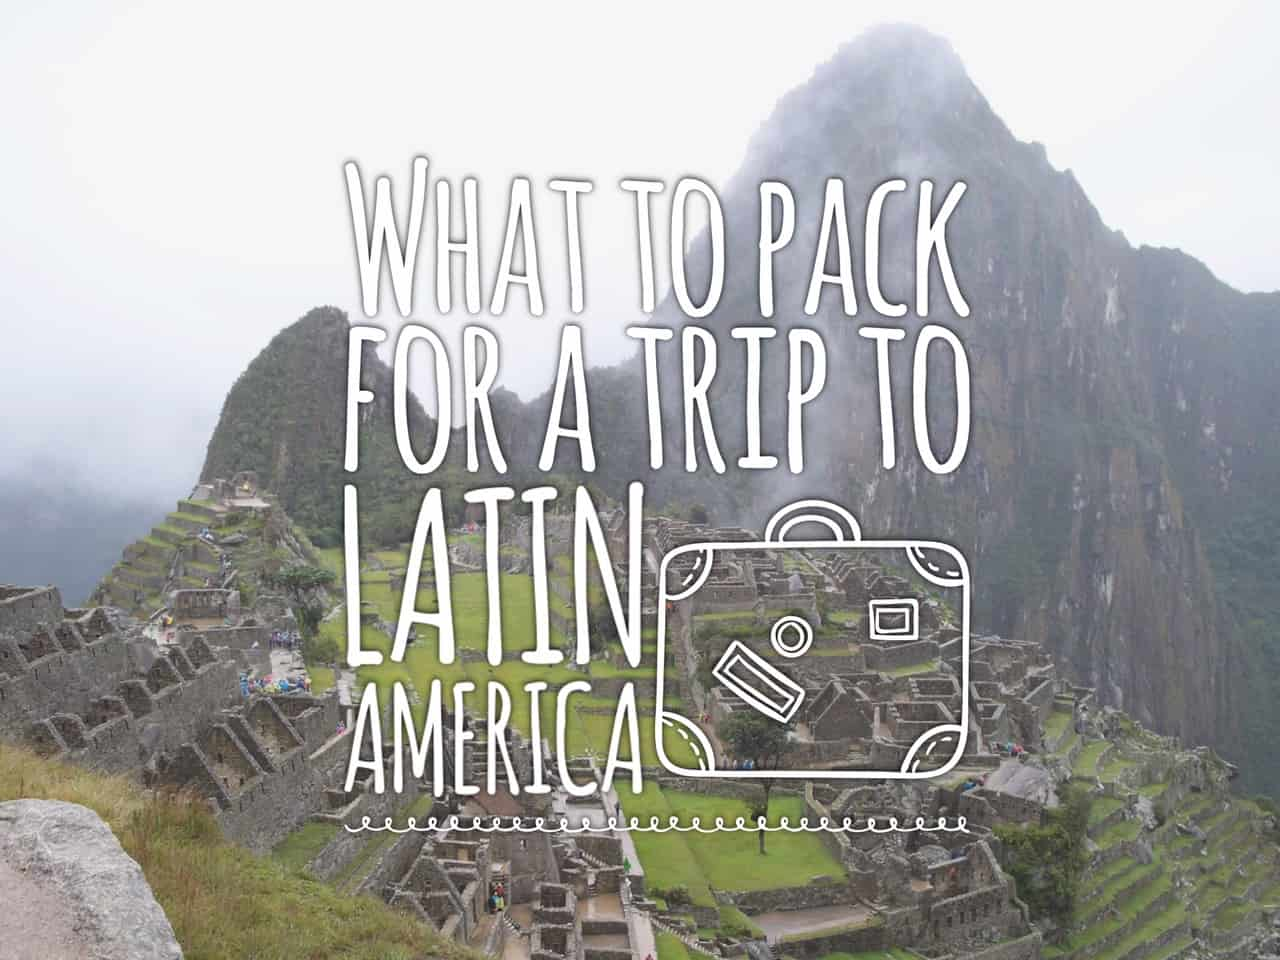 Extra Items to Bring and Other Tips for a Trip to Latin America